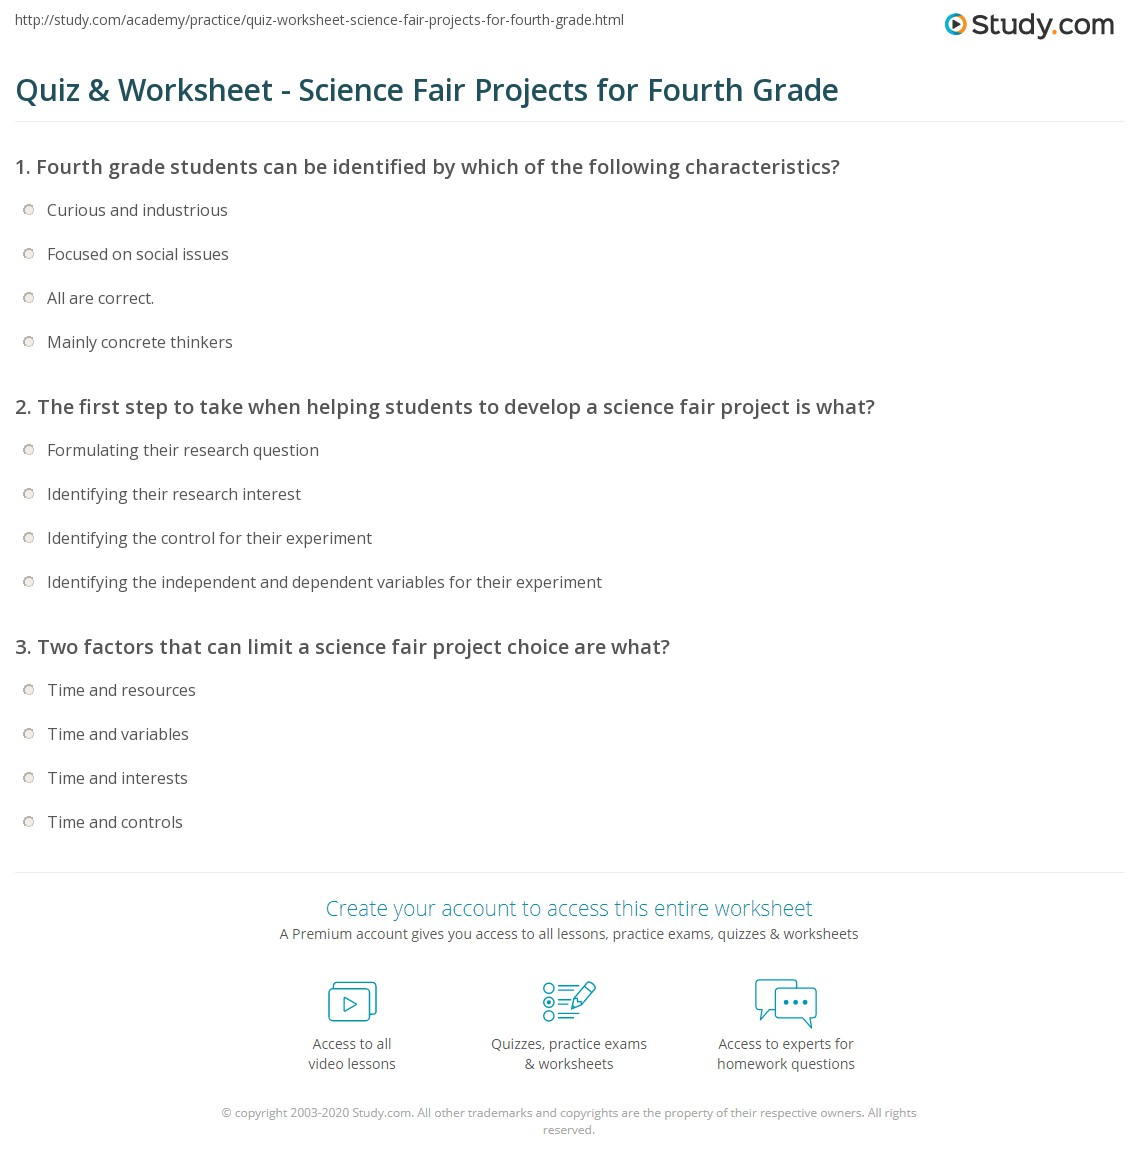 Free Worksheet 4th Grade Science Worksheets quiz worksheet science fair projects for fourth grade study com print 4th worksheet